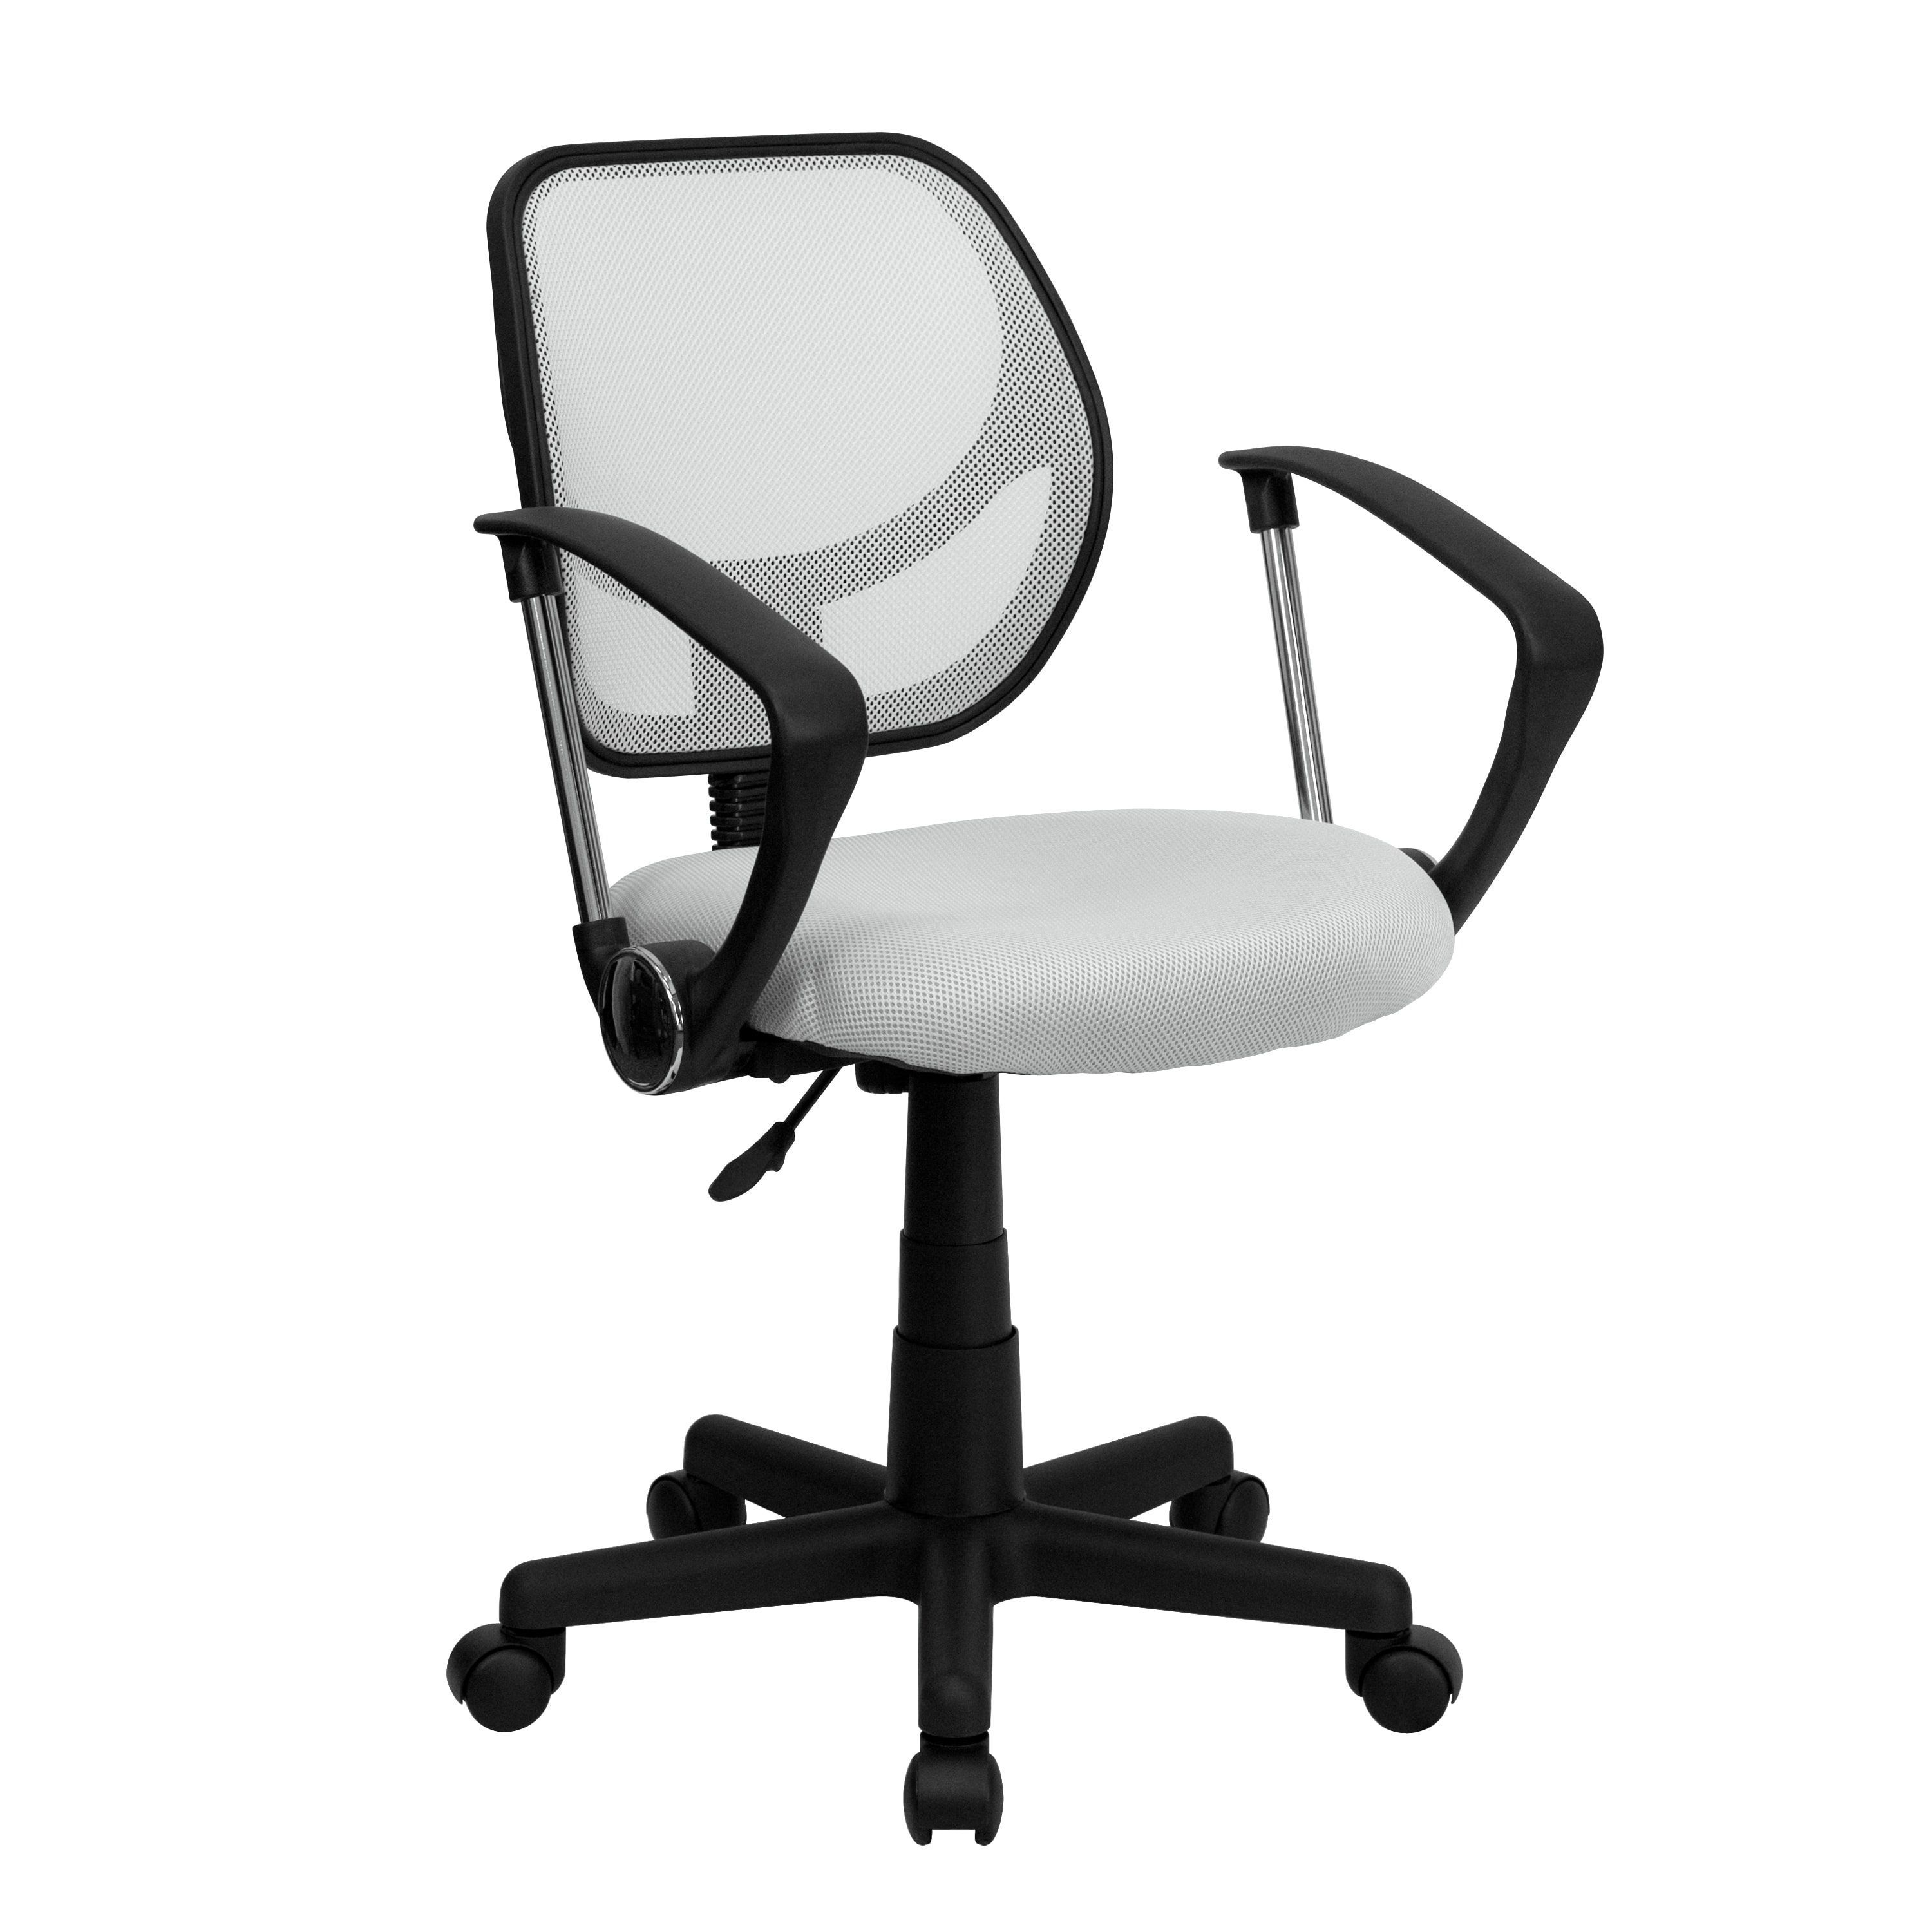 Swivel Office Chair With Pneumatic Seat